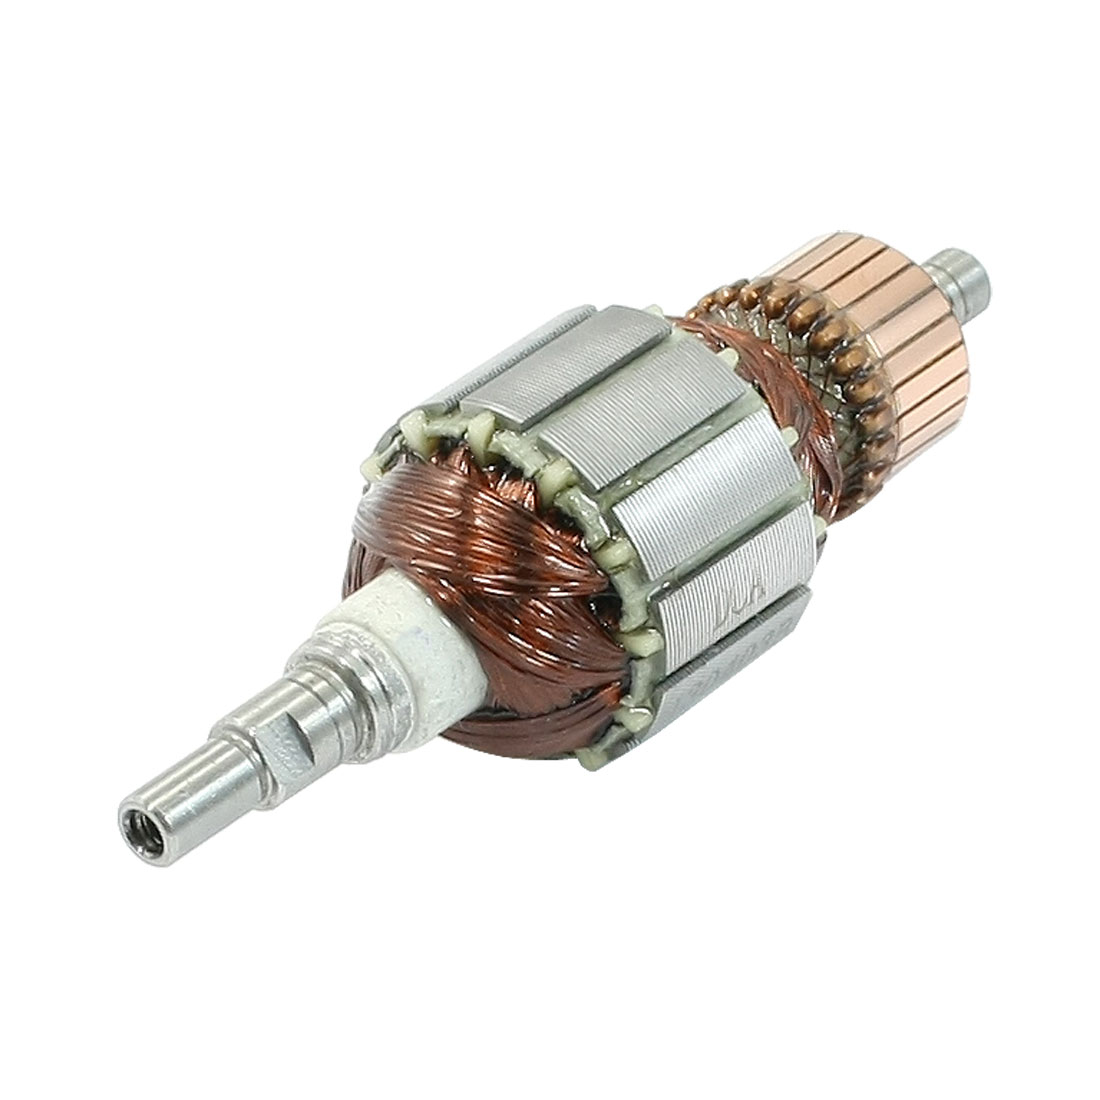 Copper Steel 7mm Drive Shaft Electric Motor Rotor AC 220V for Makita B04510